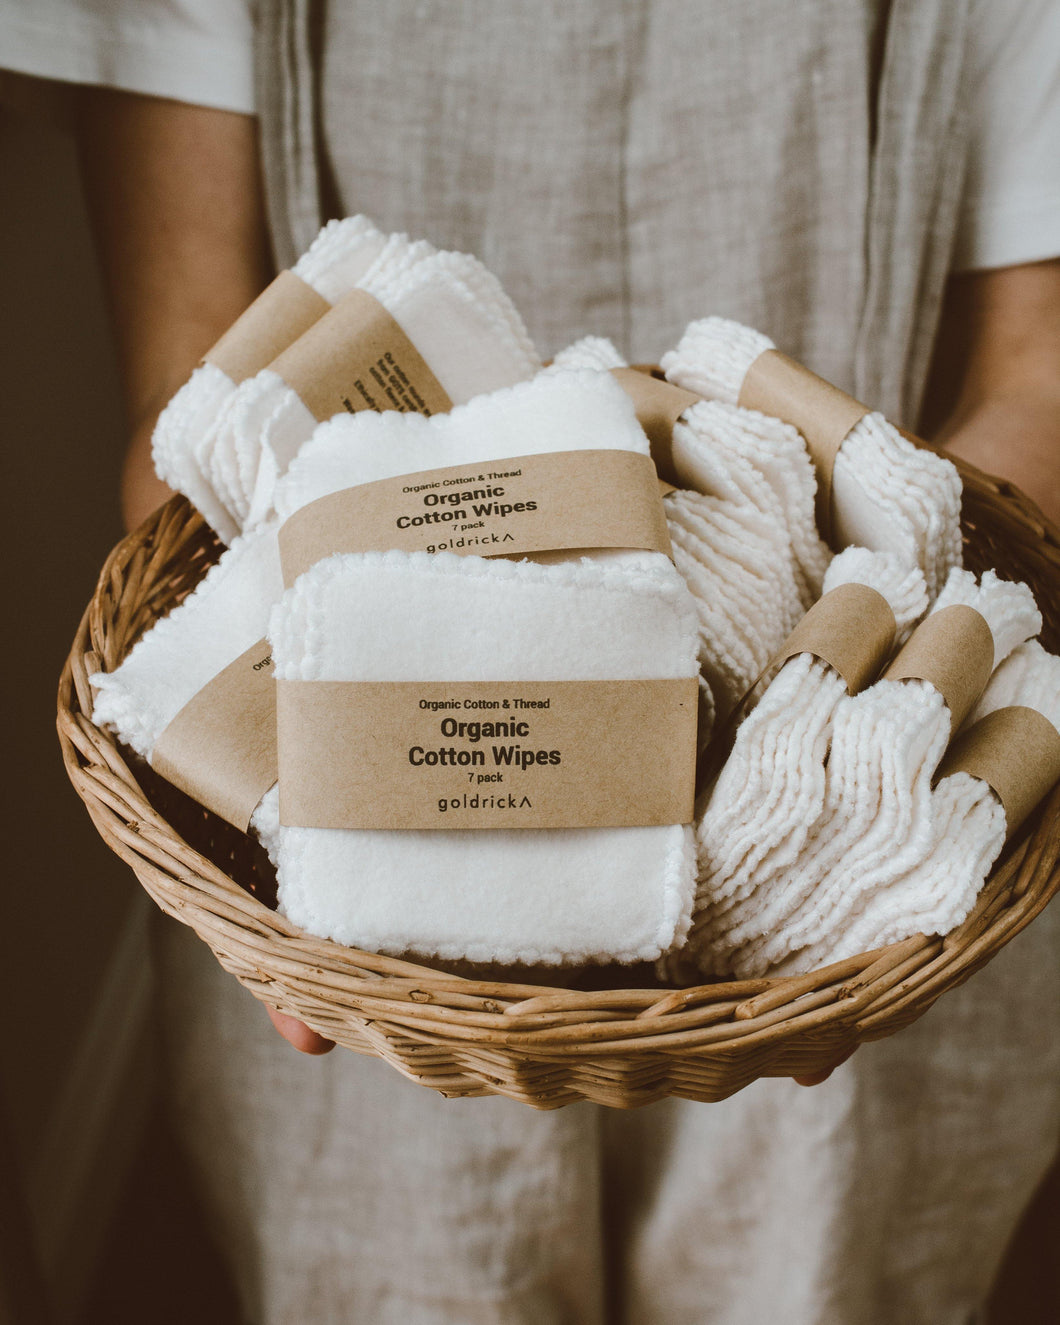 Organic Cotton Wipes | GOTS Certified Organic Cotton Fleece